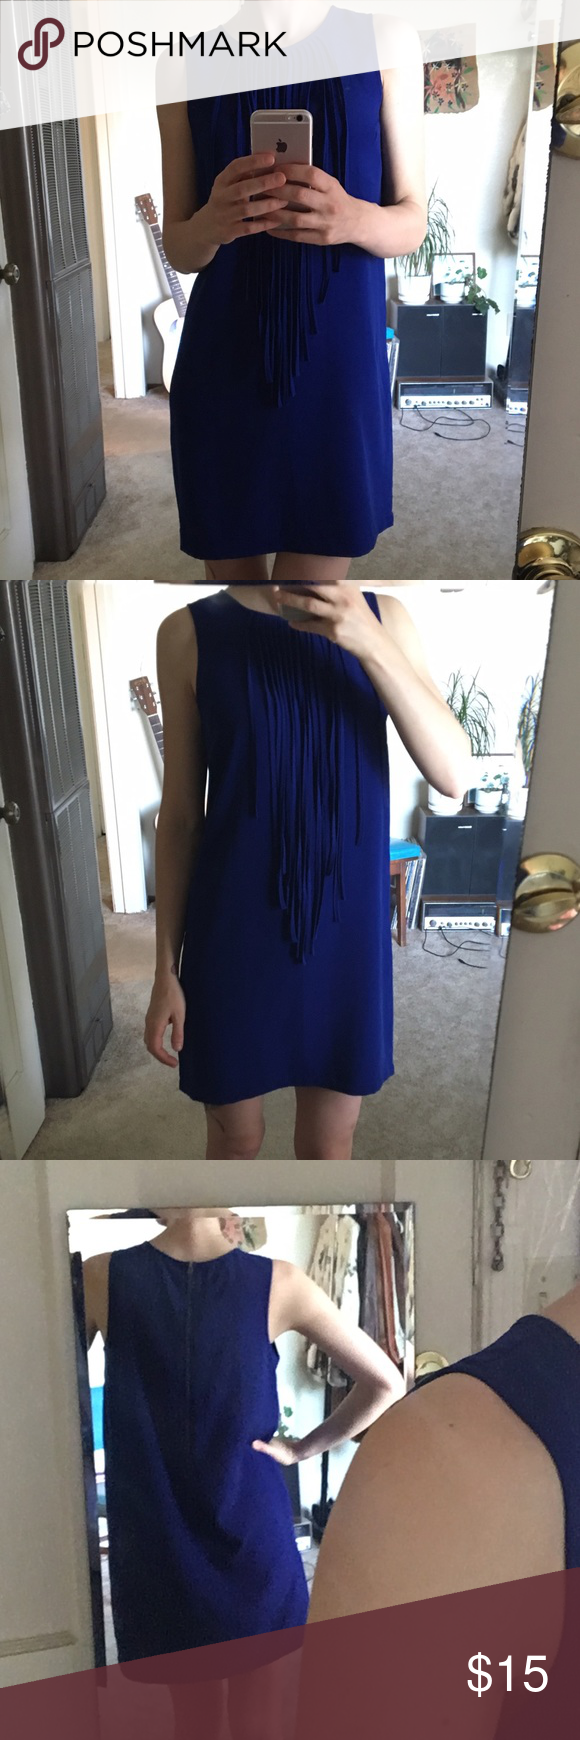 Forever21 Fringed Shift Dress Light and flirty mini shift dress in cobalt blue with long fringe from neckline. Perfect for anything from weekend brunch to a summer wedding. Metal zipper closure on back. Measures 32 1/5inches from shoulder to hem. Forever 21 Dresses Mini